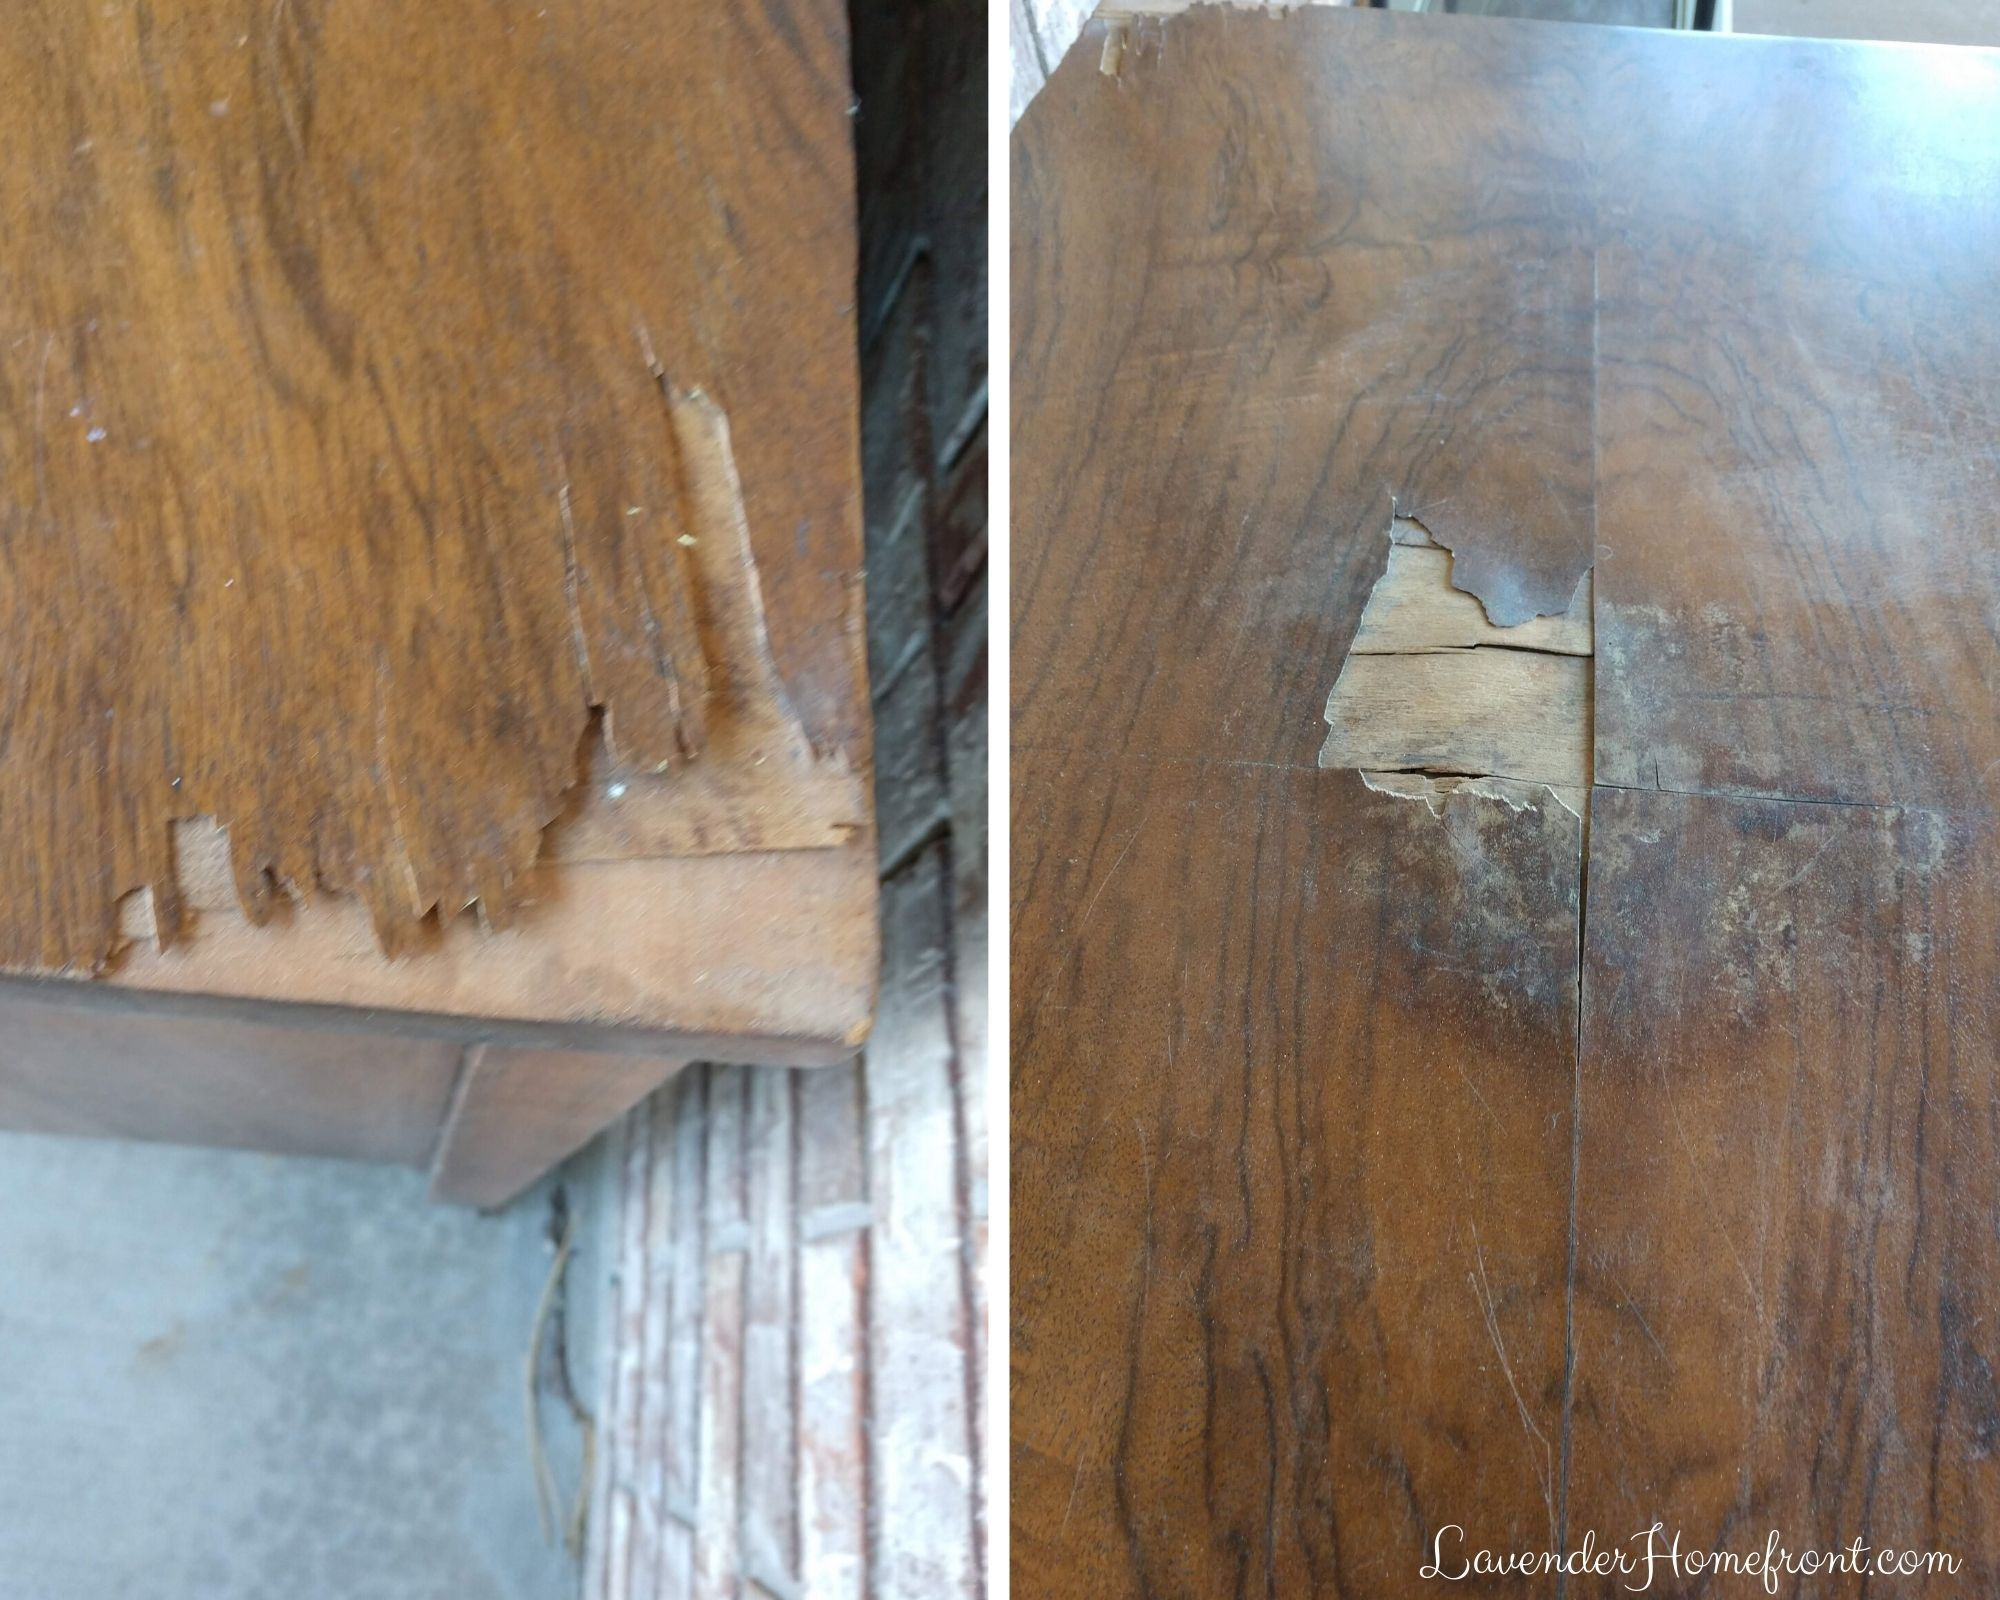 How To Use Wood Filler The Lavender Homefront Wood Filler Staining Wood Wood Putty